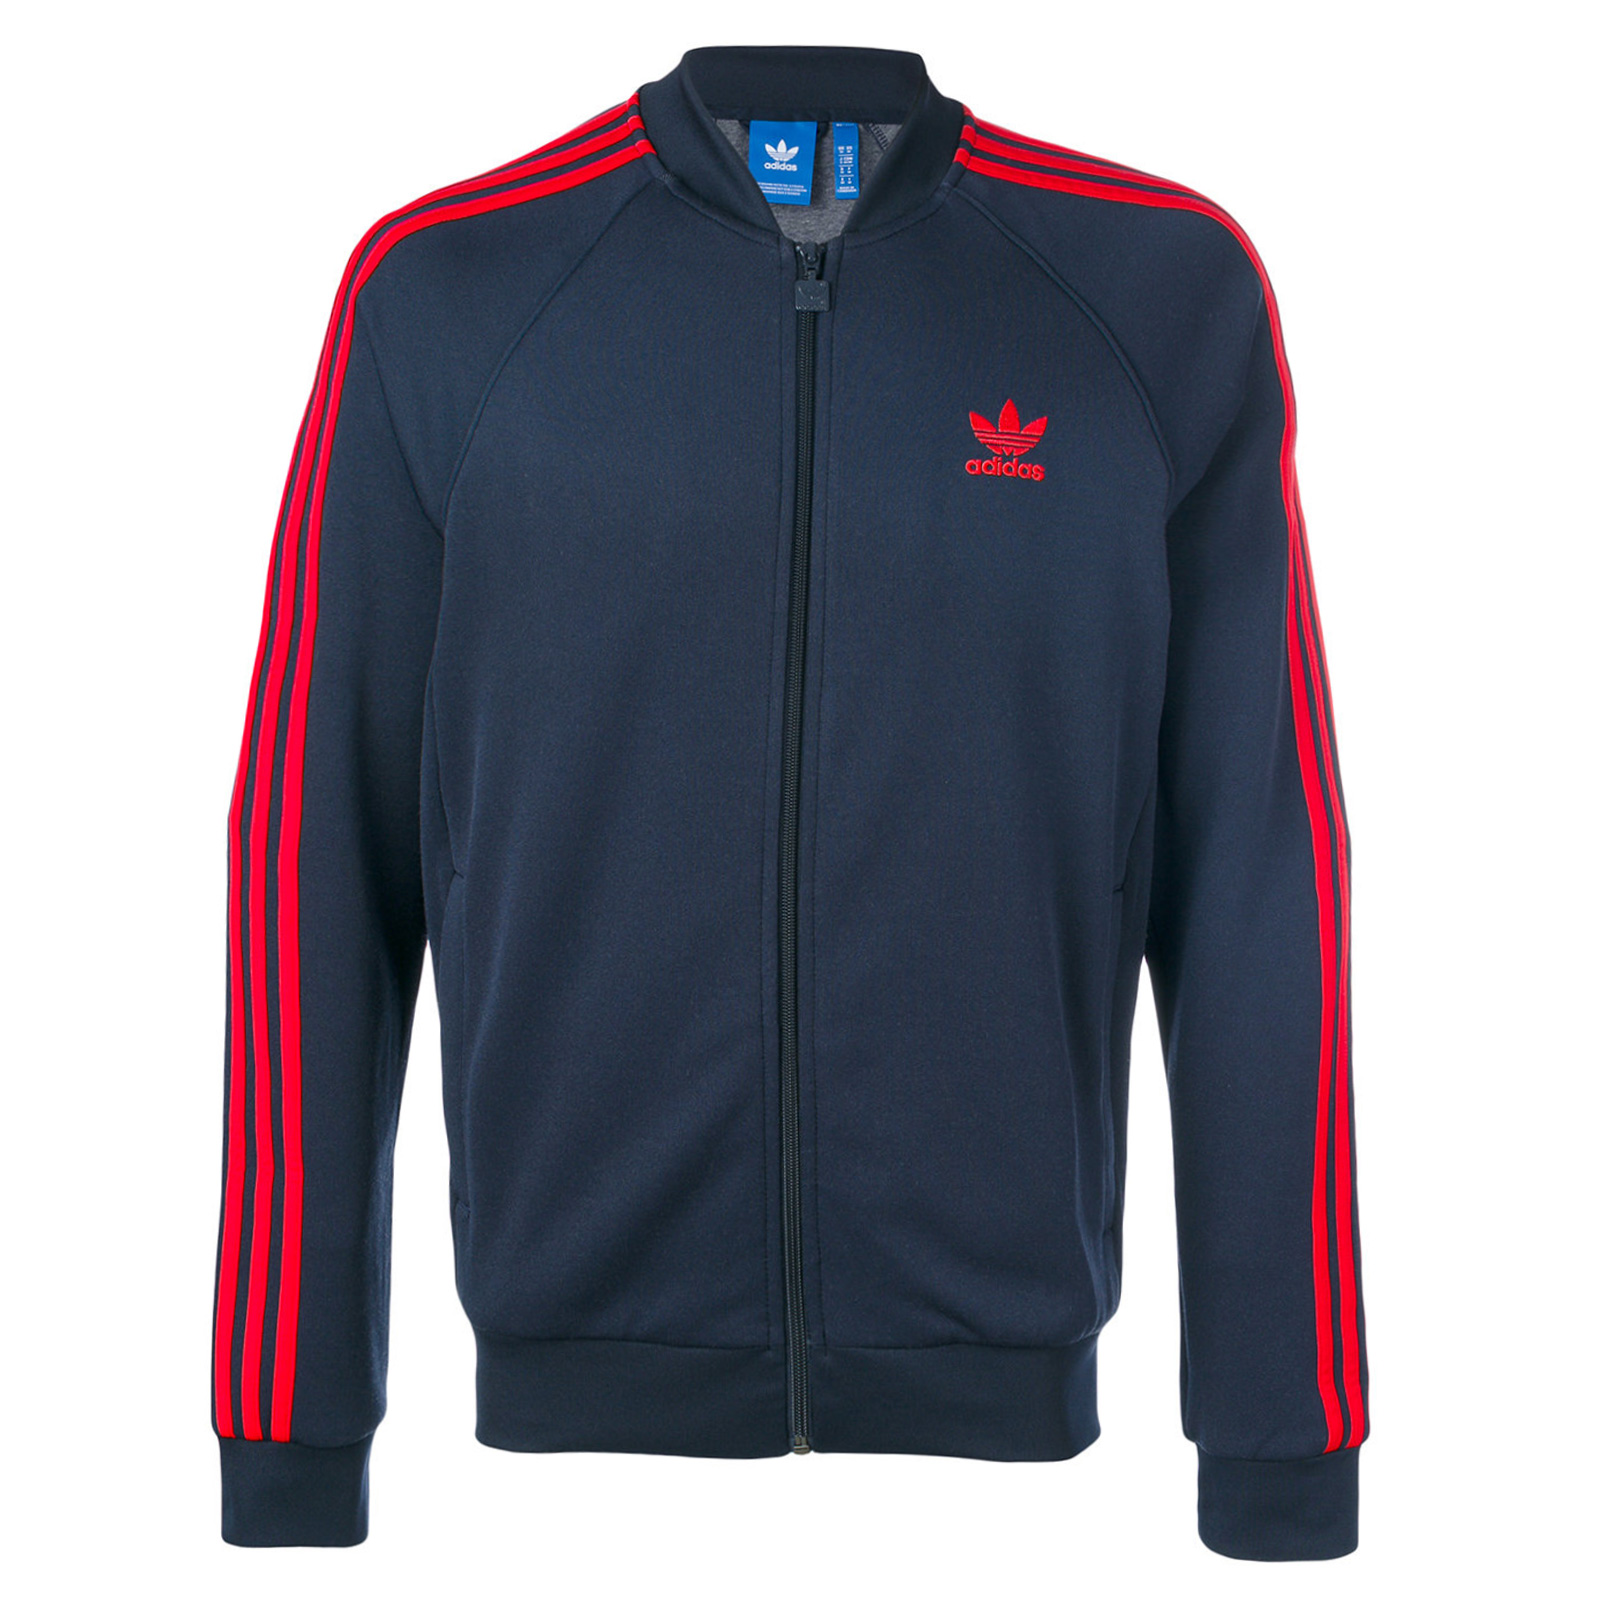 fast delivery new arrivals hot product Details about Adidas Originals Superstar Track Top Tp Firebird Track Jacket  Navy Red